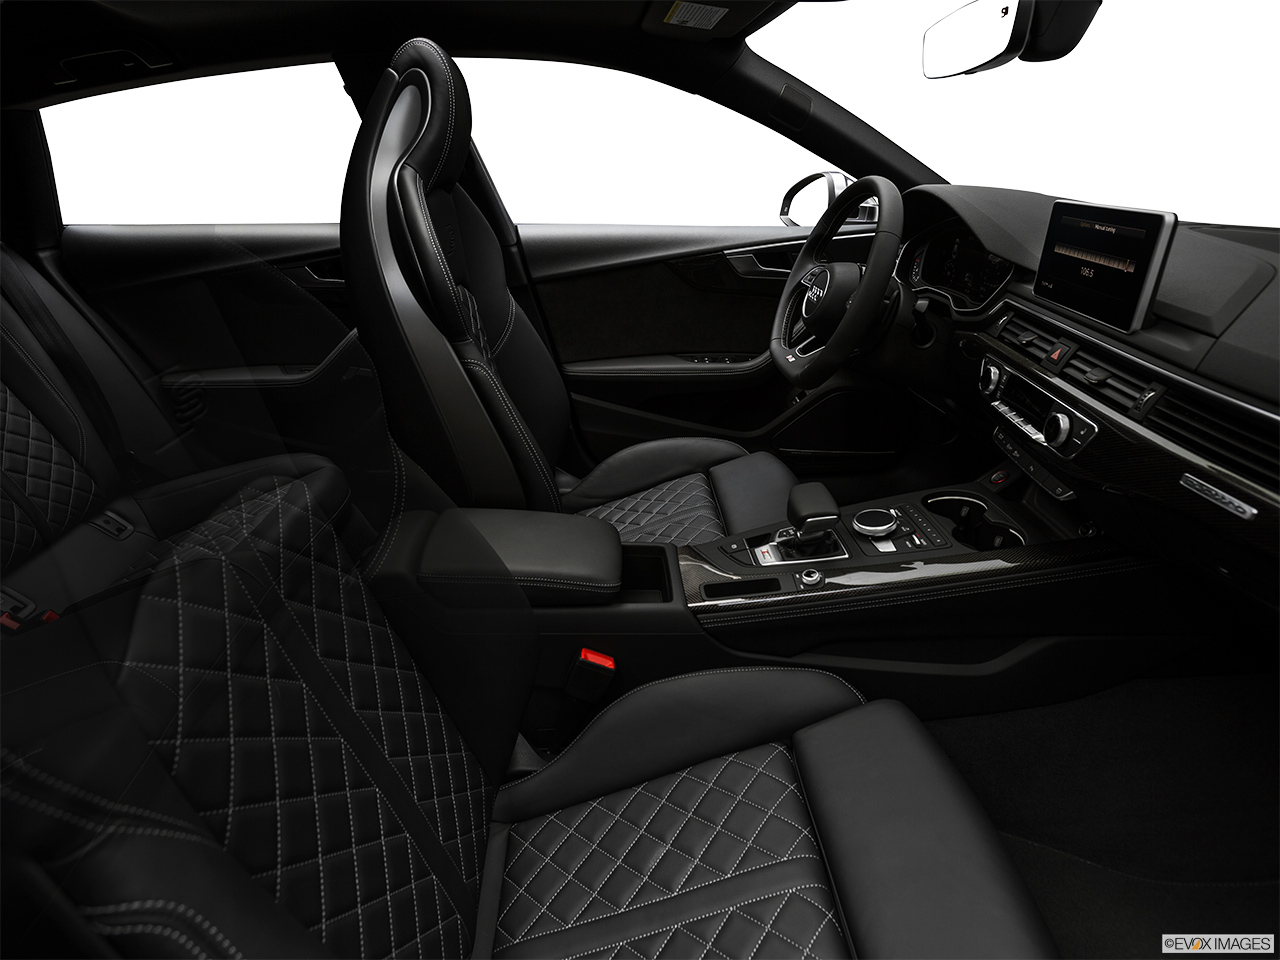 2019 Audi S5 Sportback Premium Plus 3.0 TFSI Fake Buck Shot - Interior from Passenger B pillar.